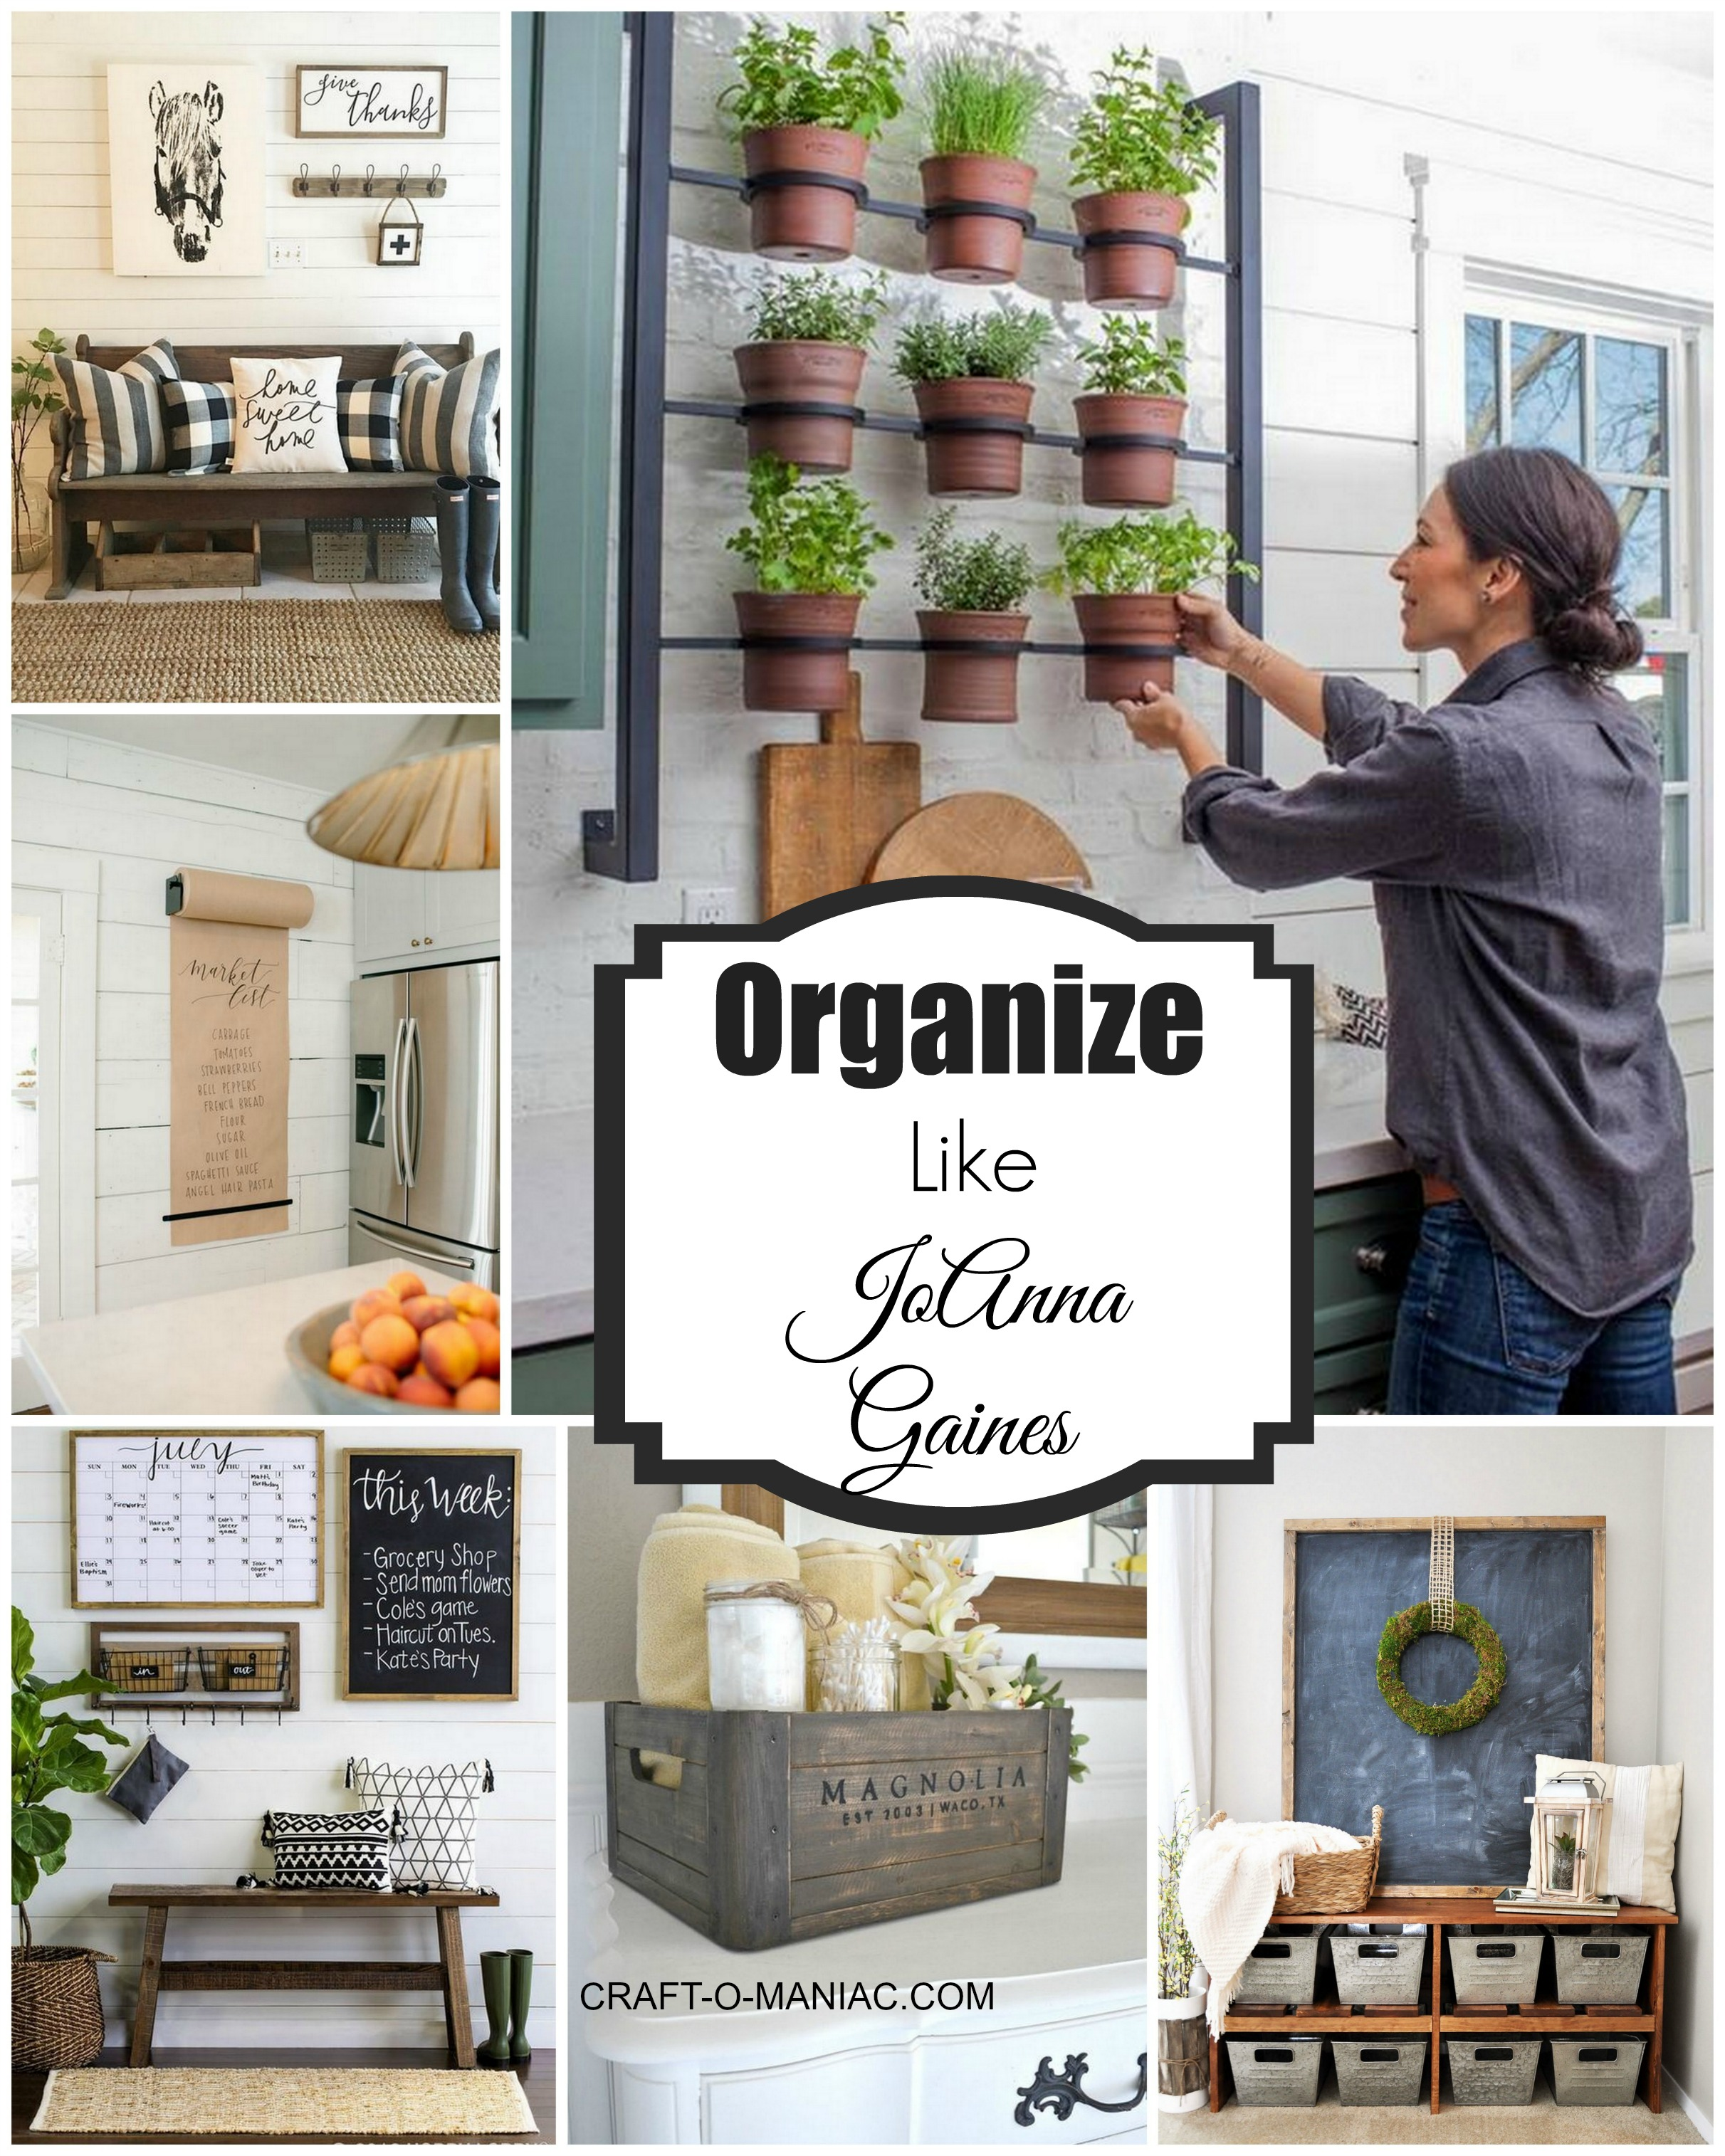 Organize your home like joanna gaines craft o maniac Organizing your home